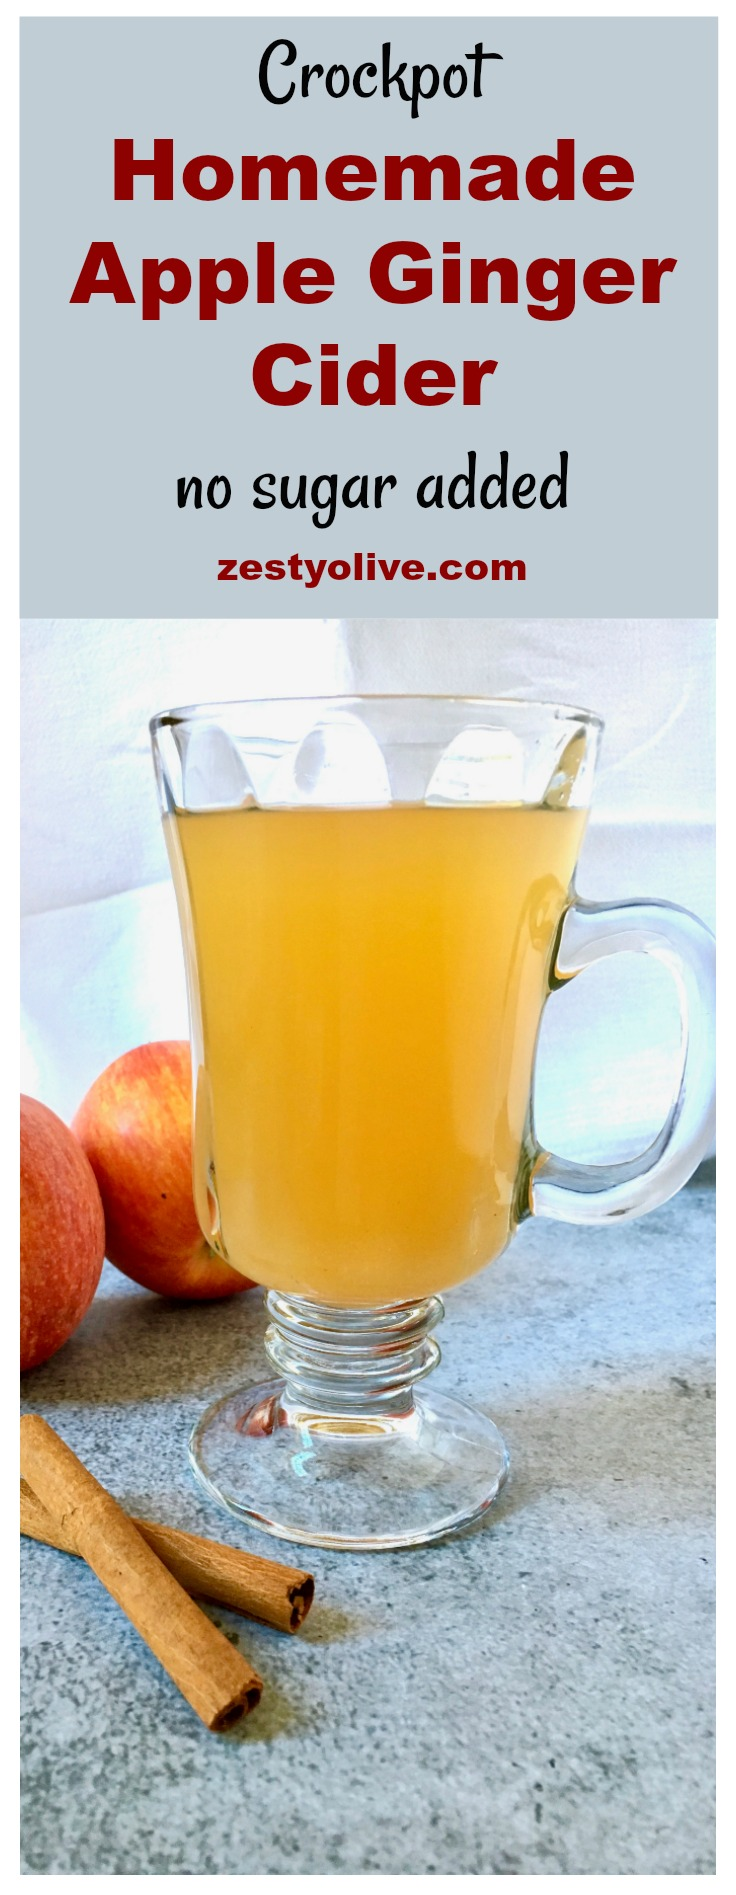 This Easy Homemade Apple Ginger Cider Recipe with no added sugar will fill your home with aromas of the season: apple, orange, ginger, cinnamon and cloves, while it simmers in your crock pot.